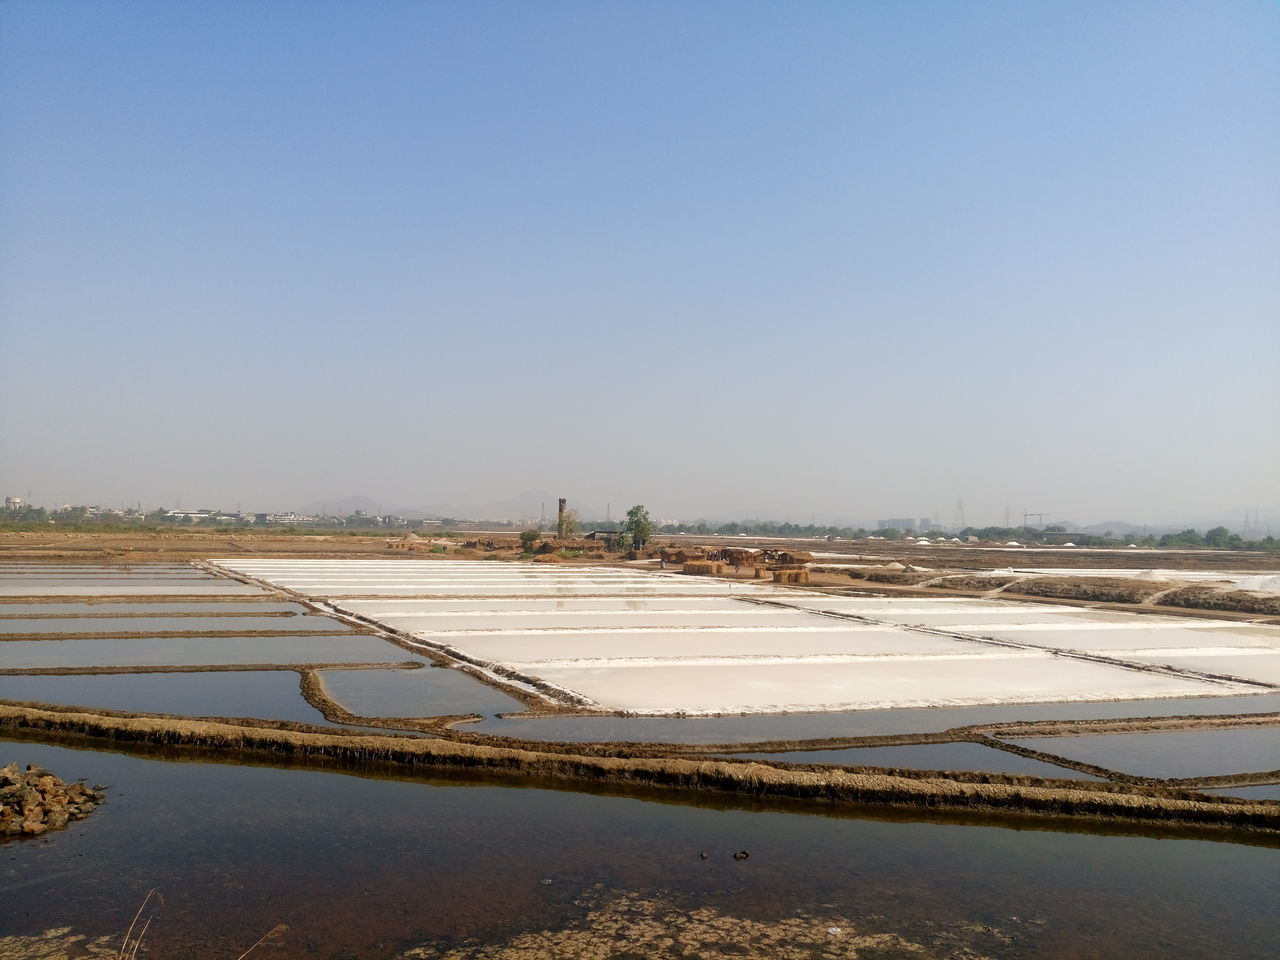 Agriculture Beauty In Nature Clear Sky Day Nature No People Outdoors Salt - Mineral Salt Flat Sky Snow Water Winter